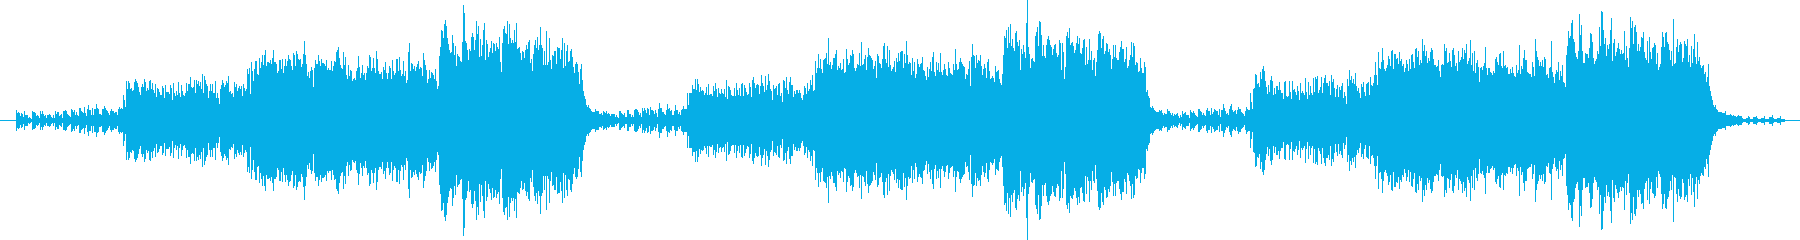 Mysterious and mysterious melody's reproduced waveform